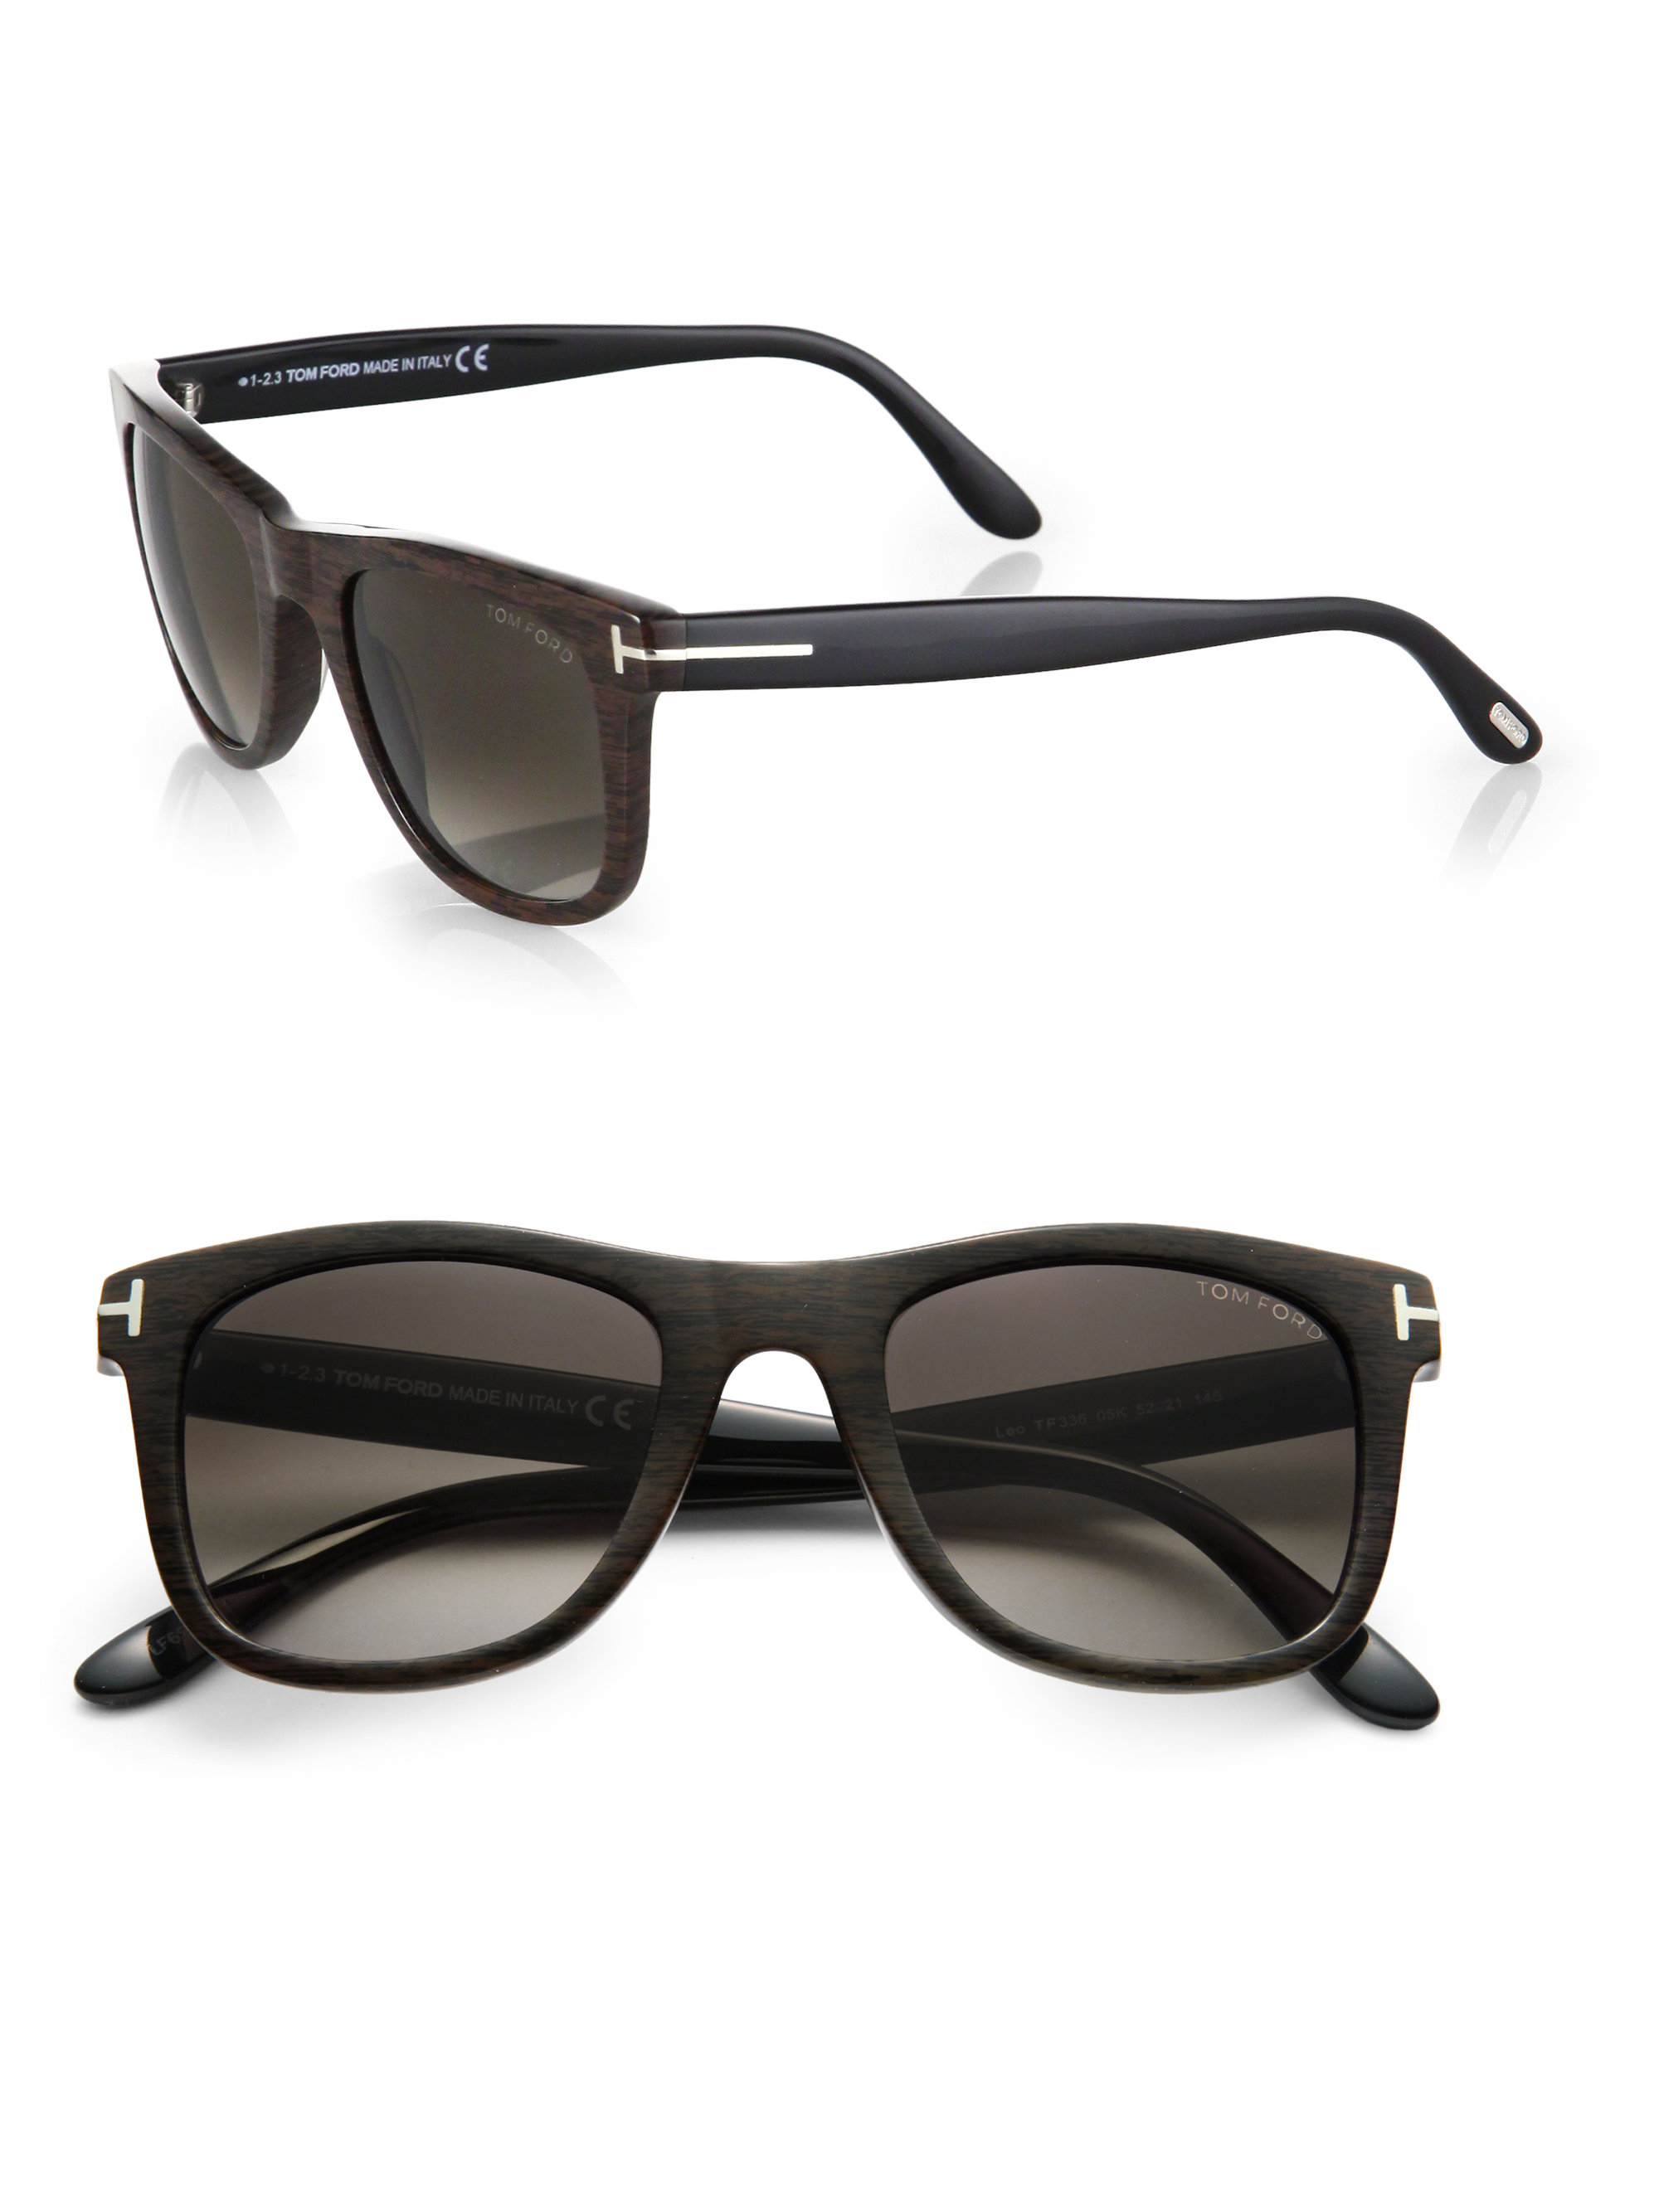 tom ford sunglasses rrve  tom ford wayfarer sunglasses tom ford wayfarer sunglasses